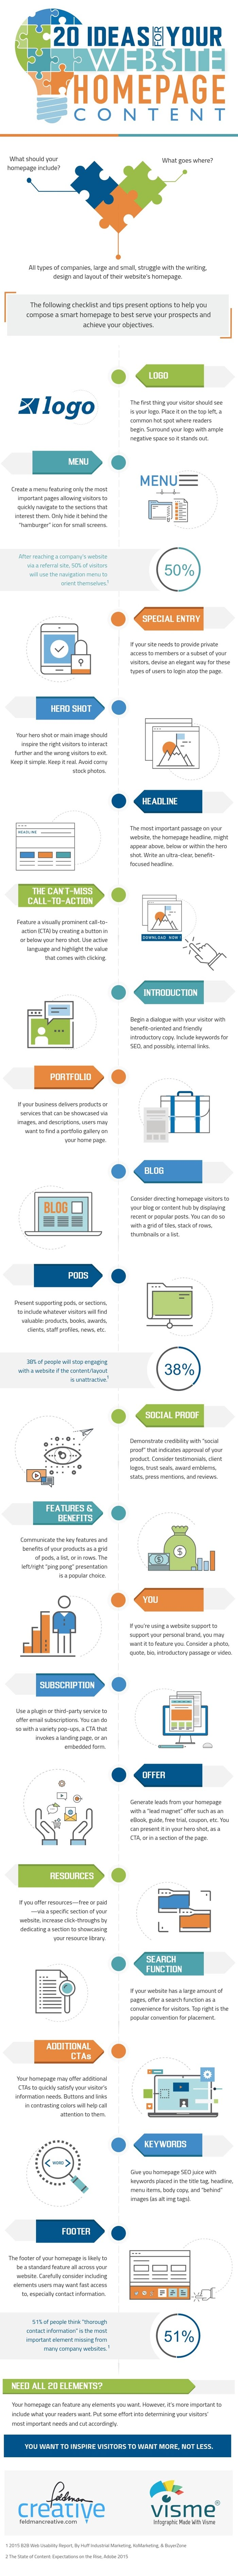 20 Ideas for Your Website Homepage Content - #Infographic